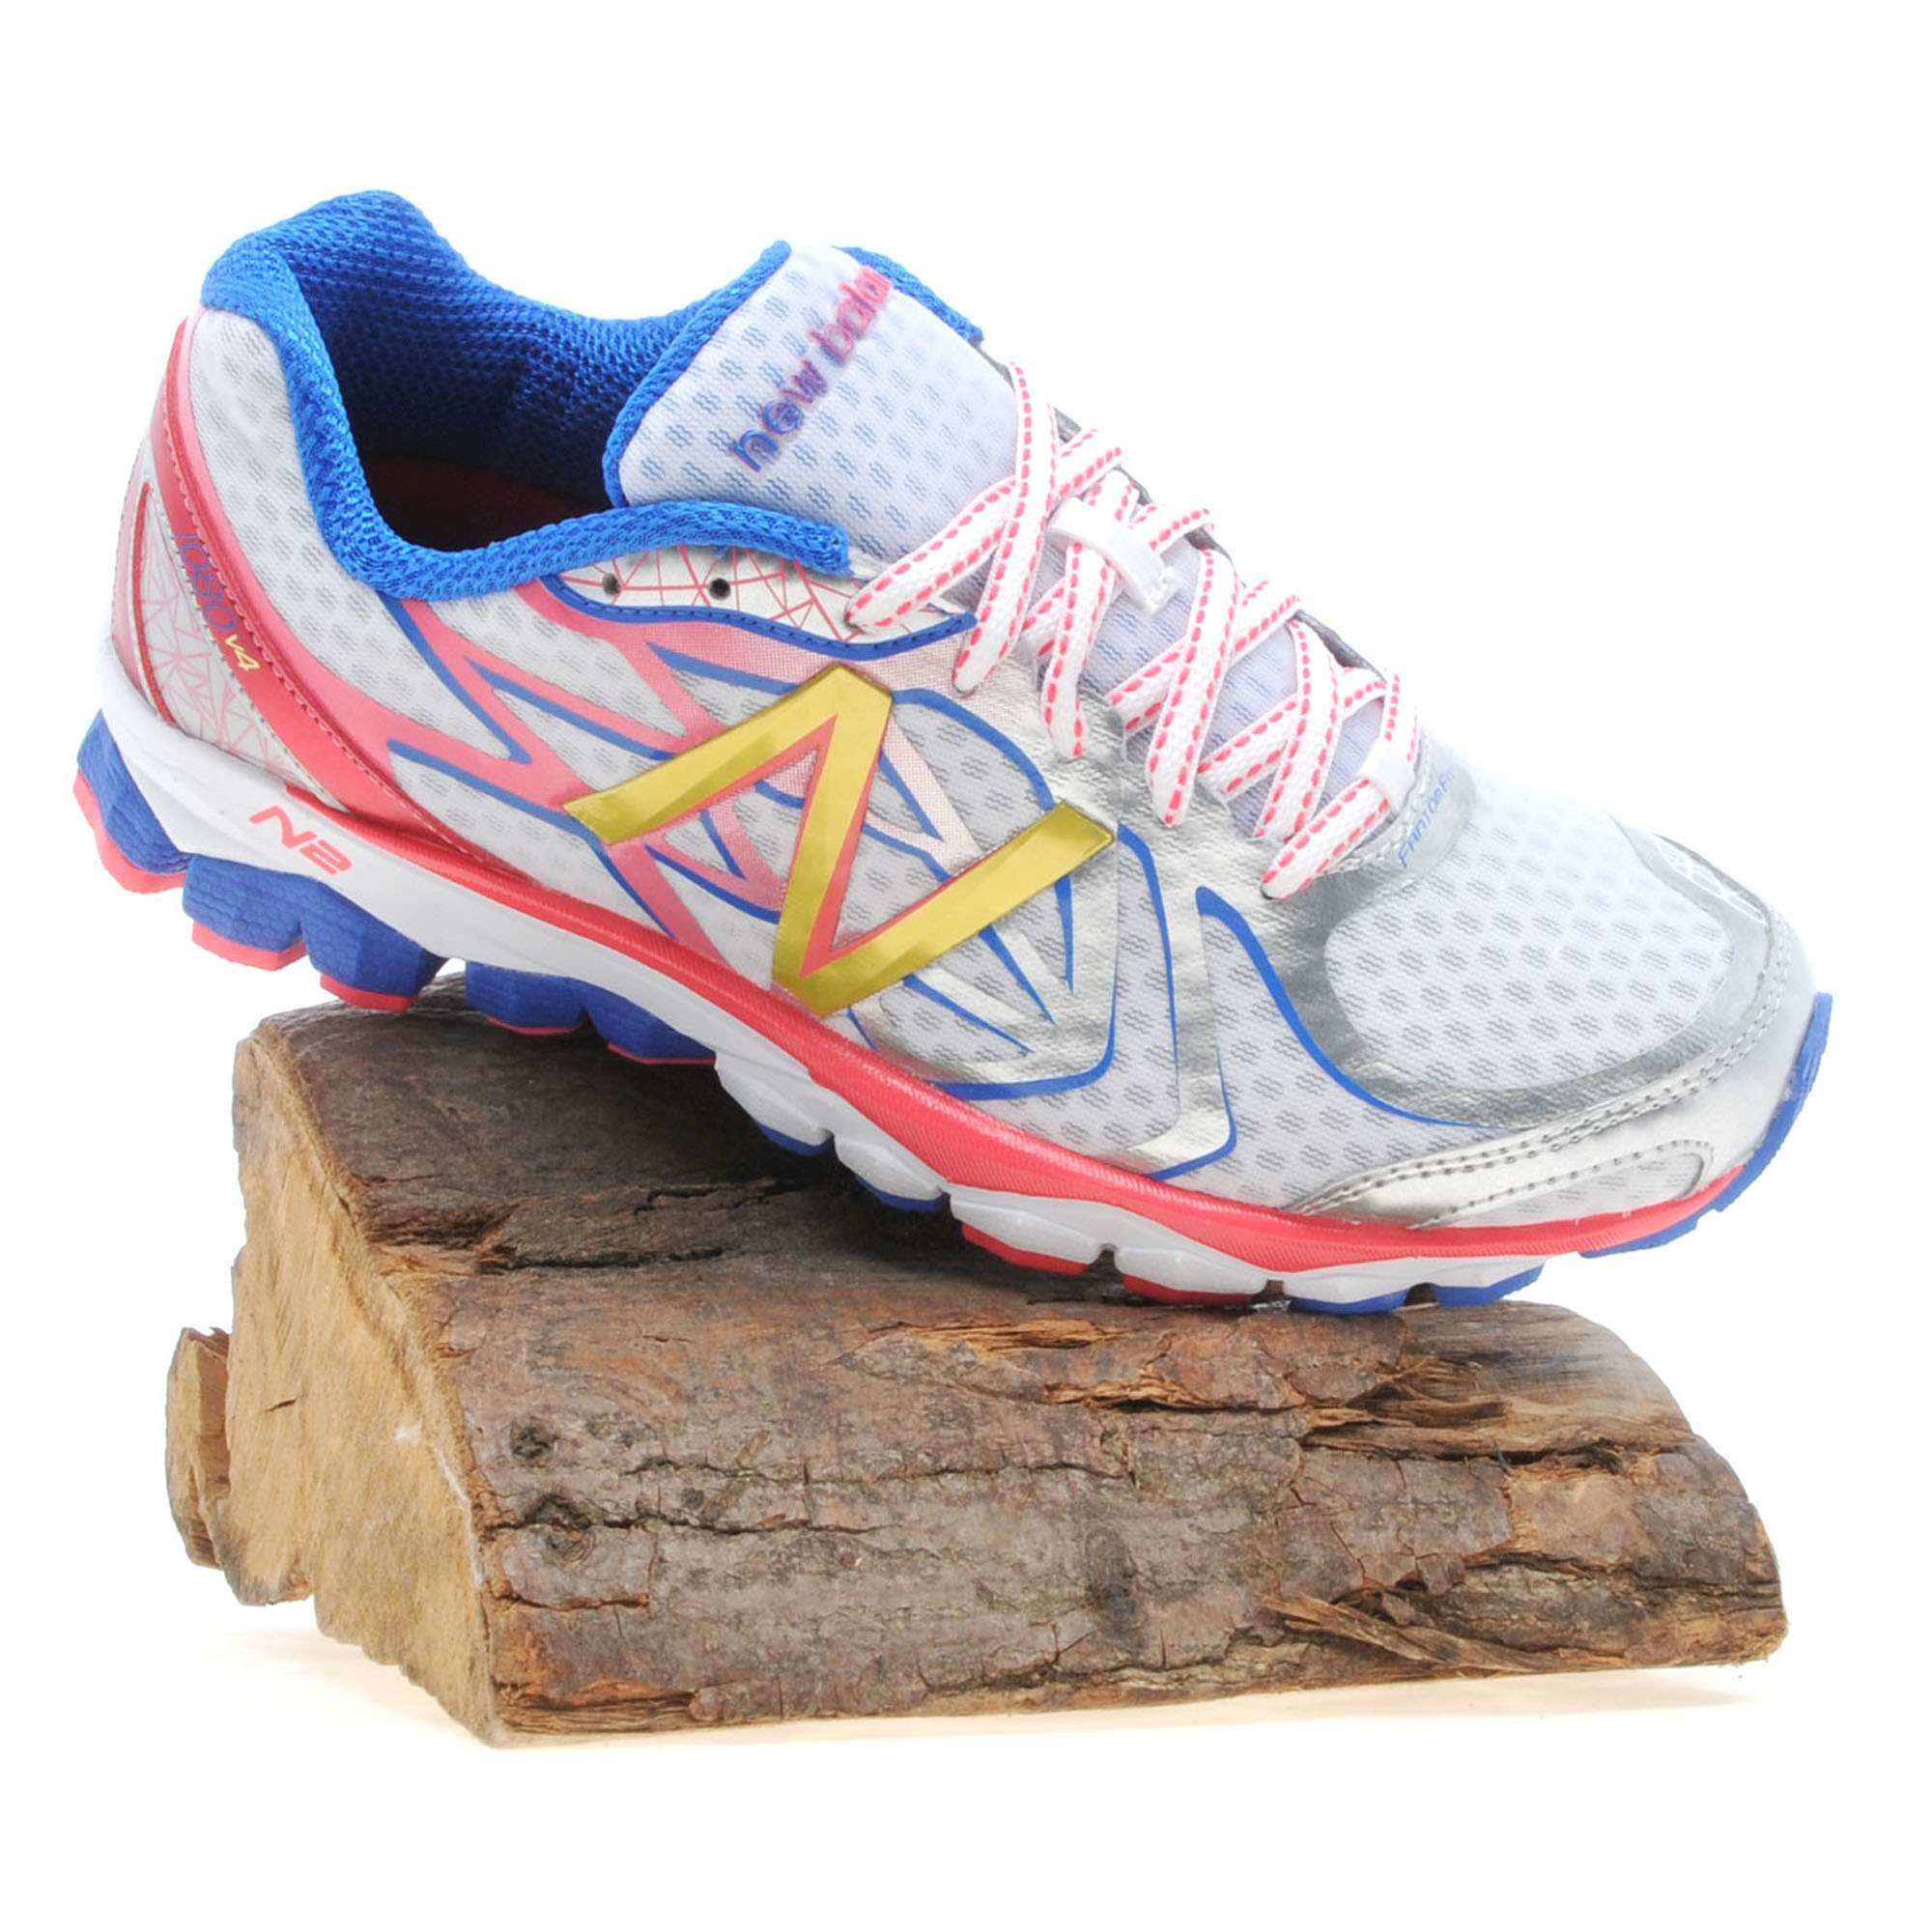 NEW BALANCE Women's 1080v4 Running Shoe